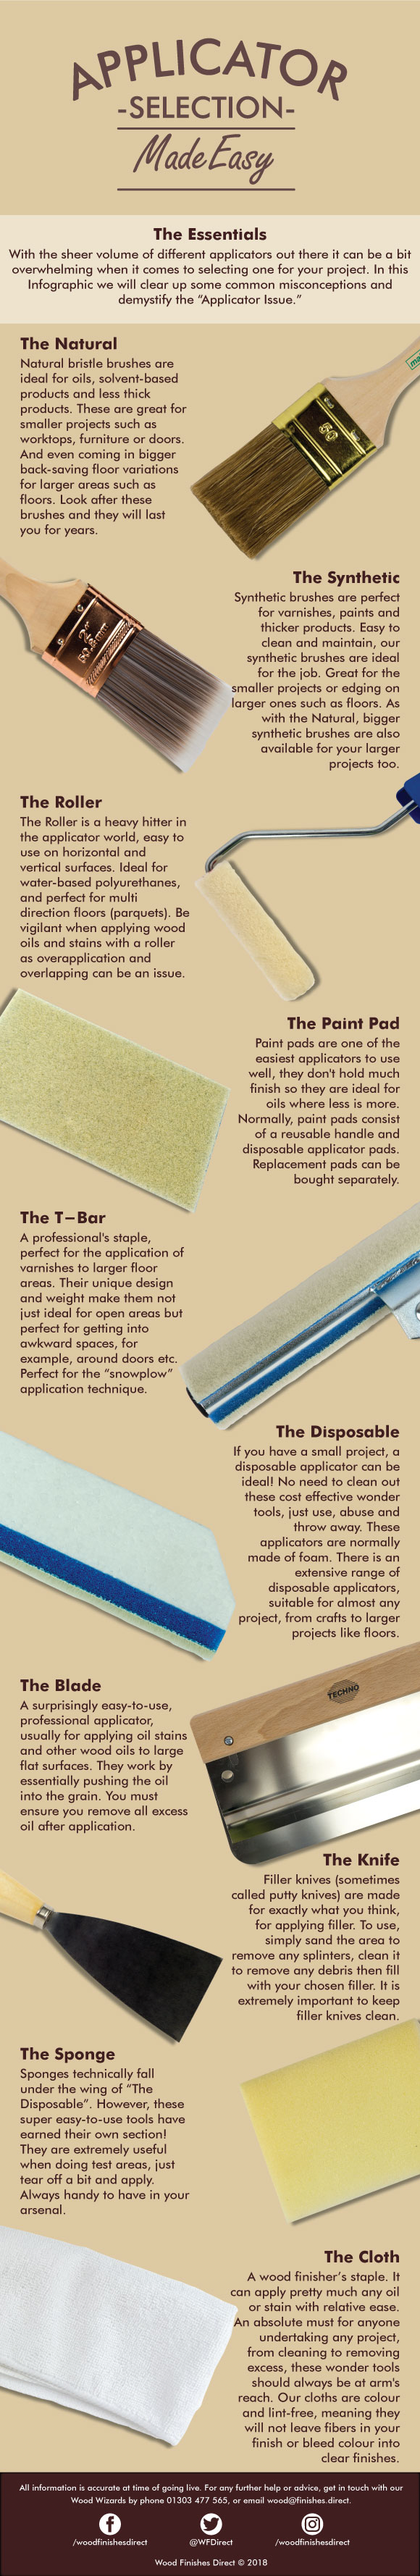 wood-finishes-direct-applicator-infographic